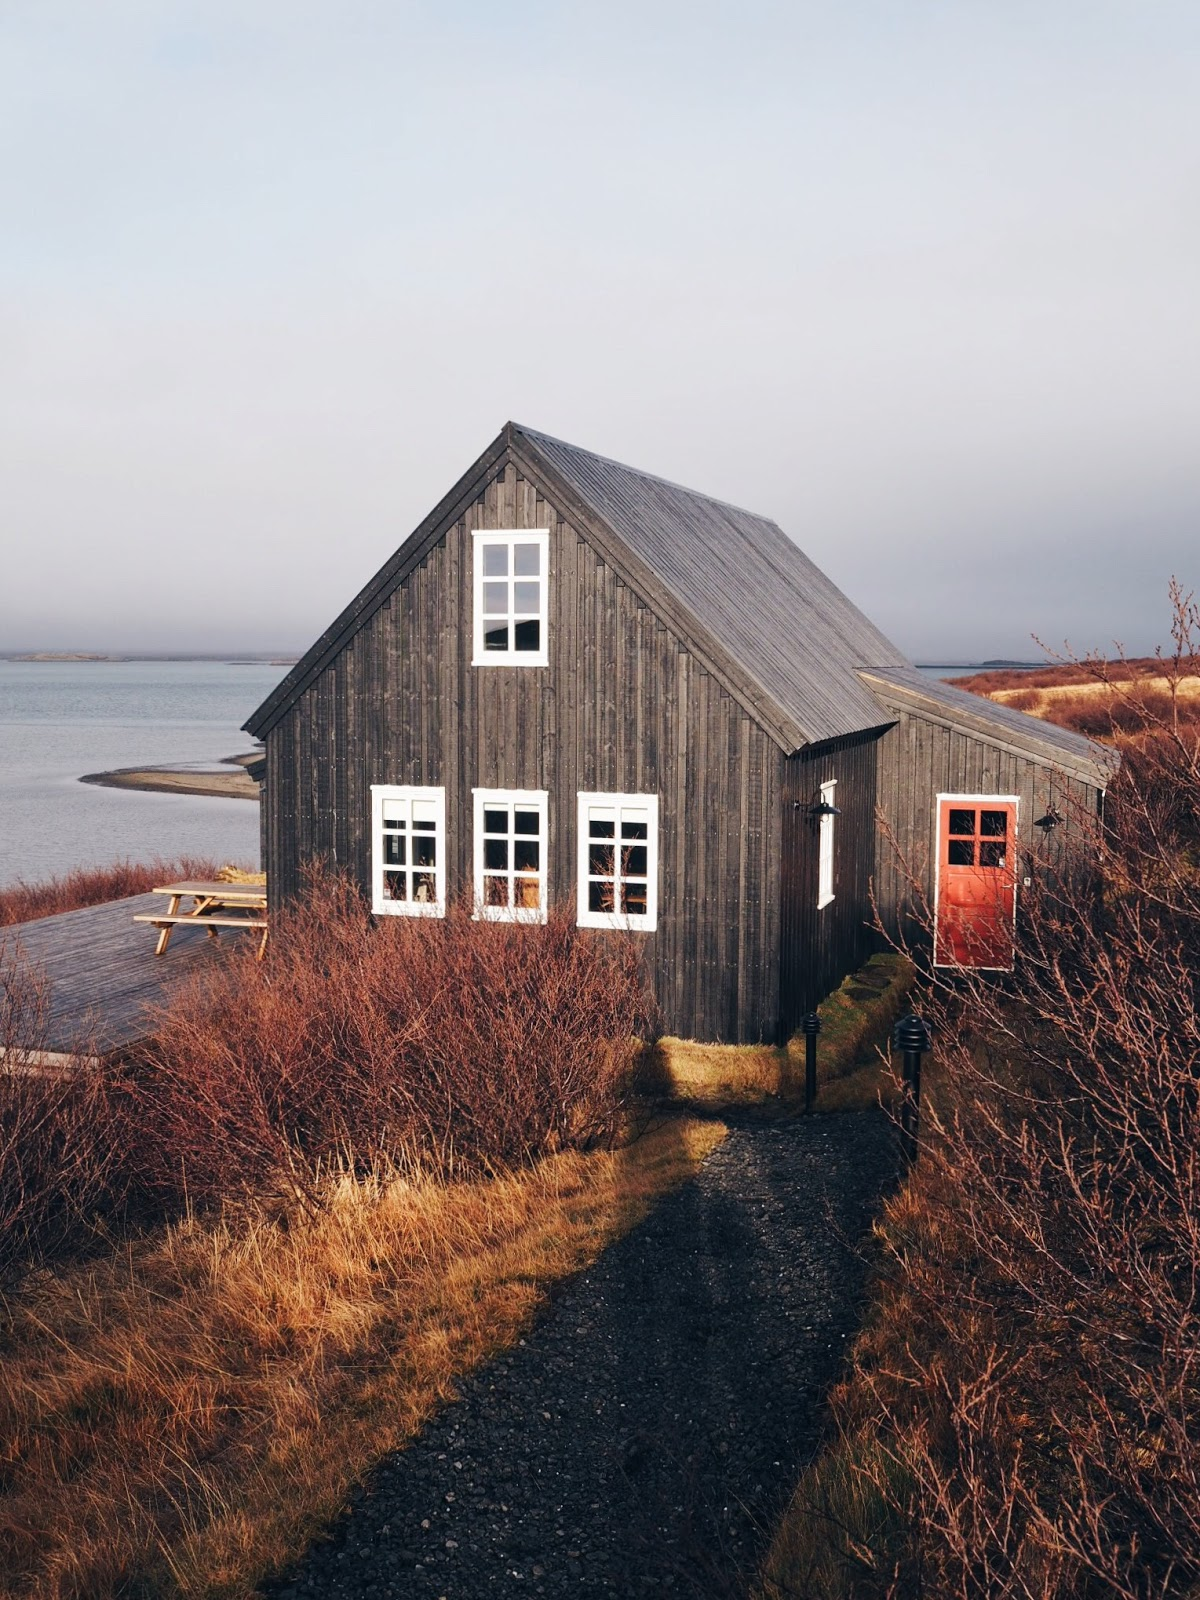 Where To Stay In Iceland Our Borgarnes Airbnb